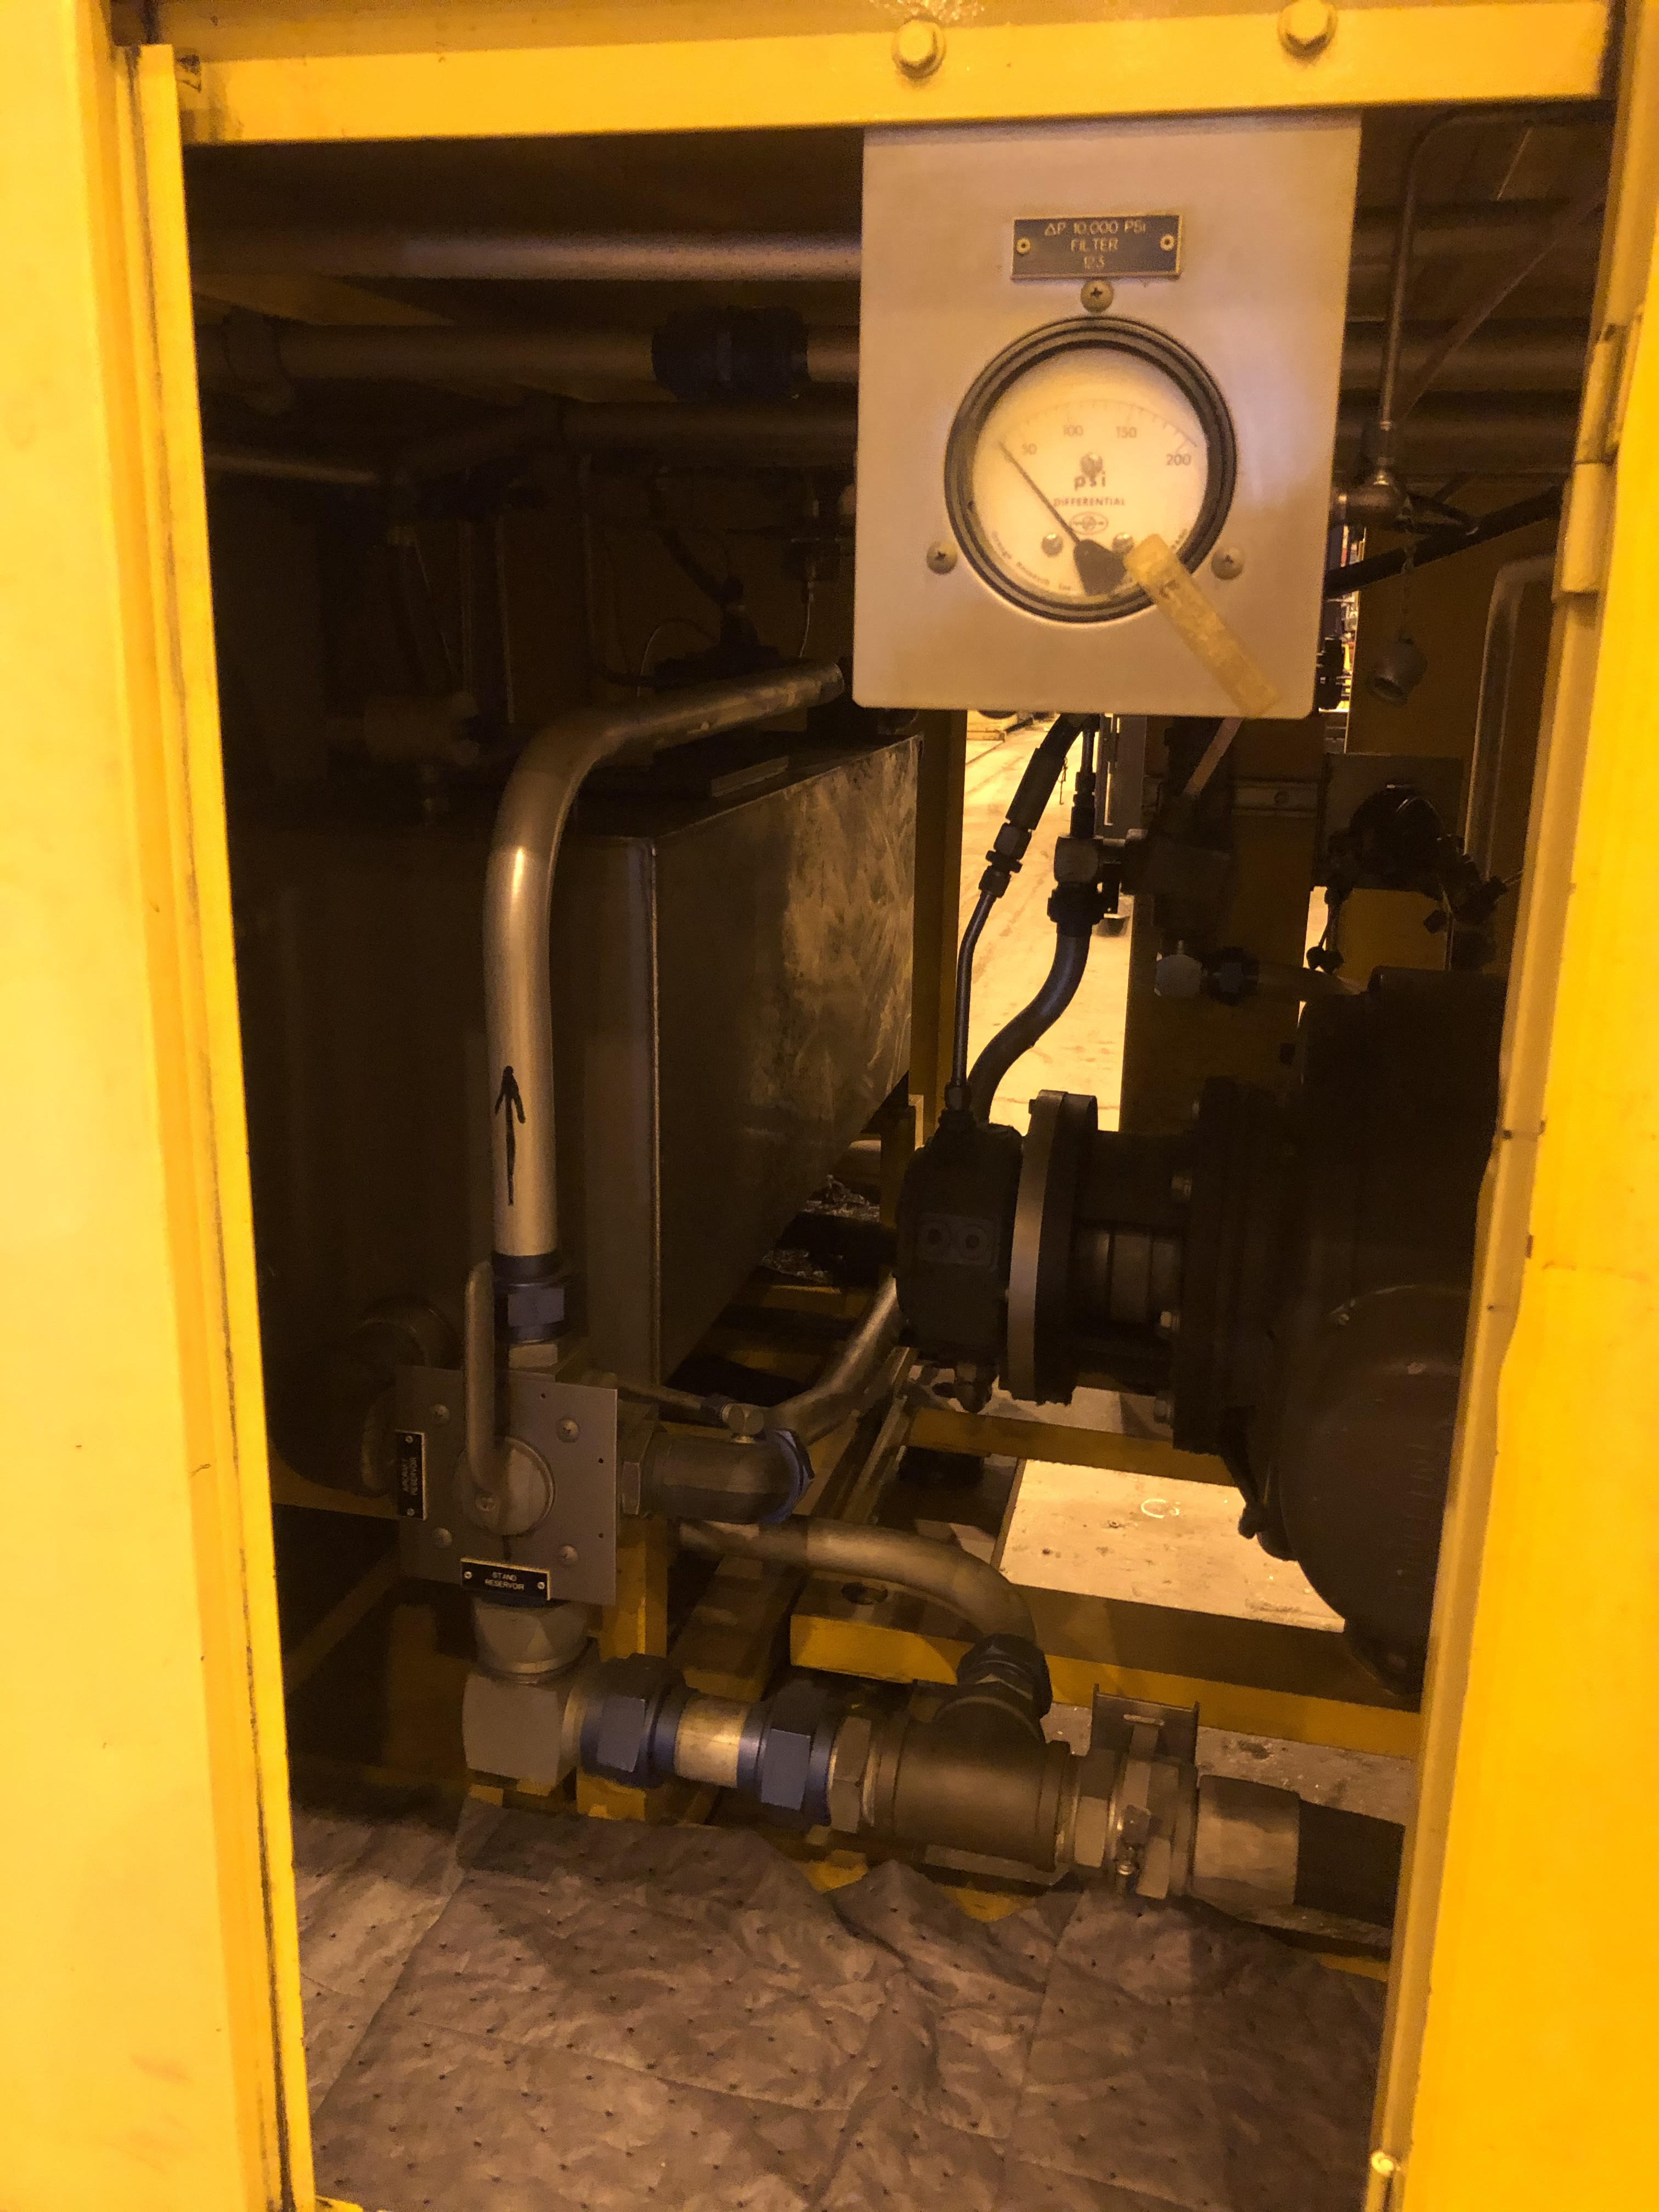 ACL Aircraft Hydraulic Test Stand - Image 9 of 14